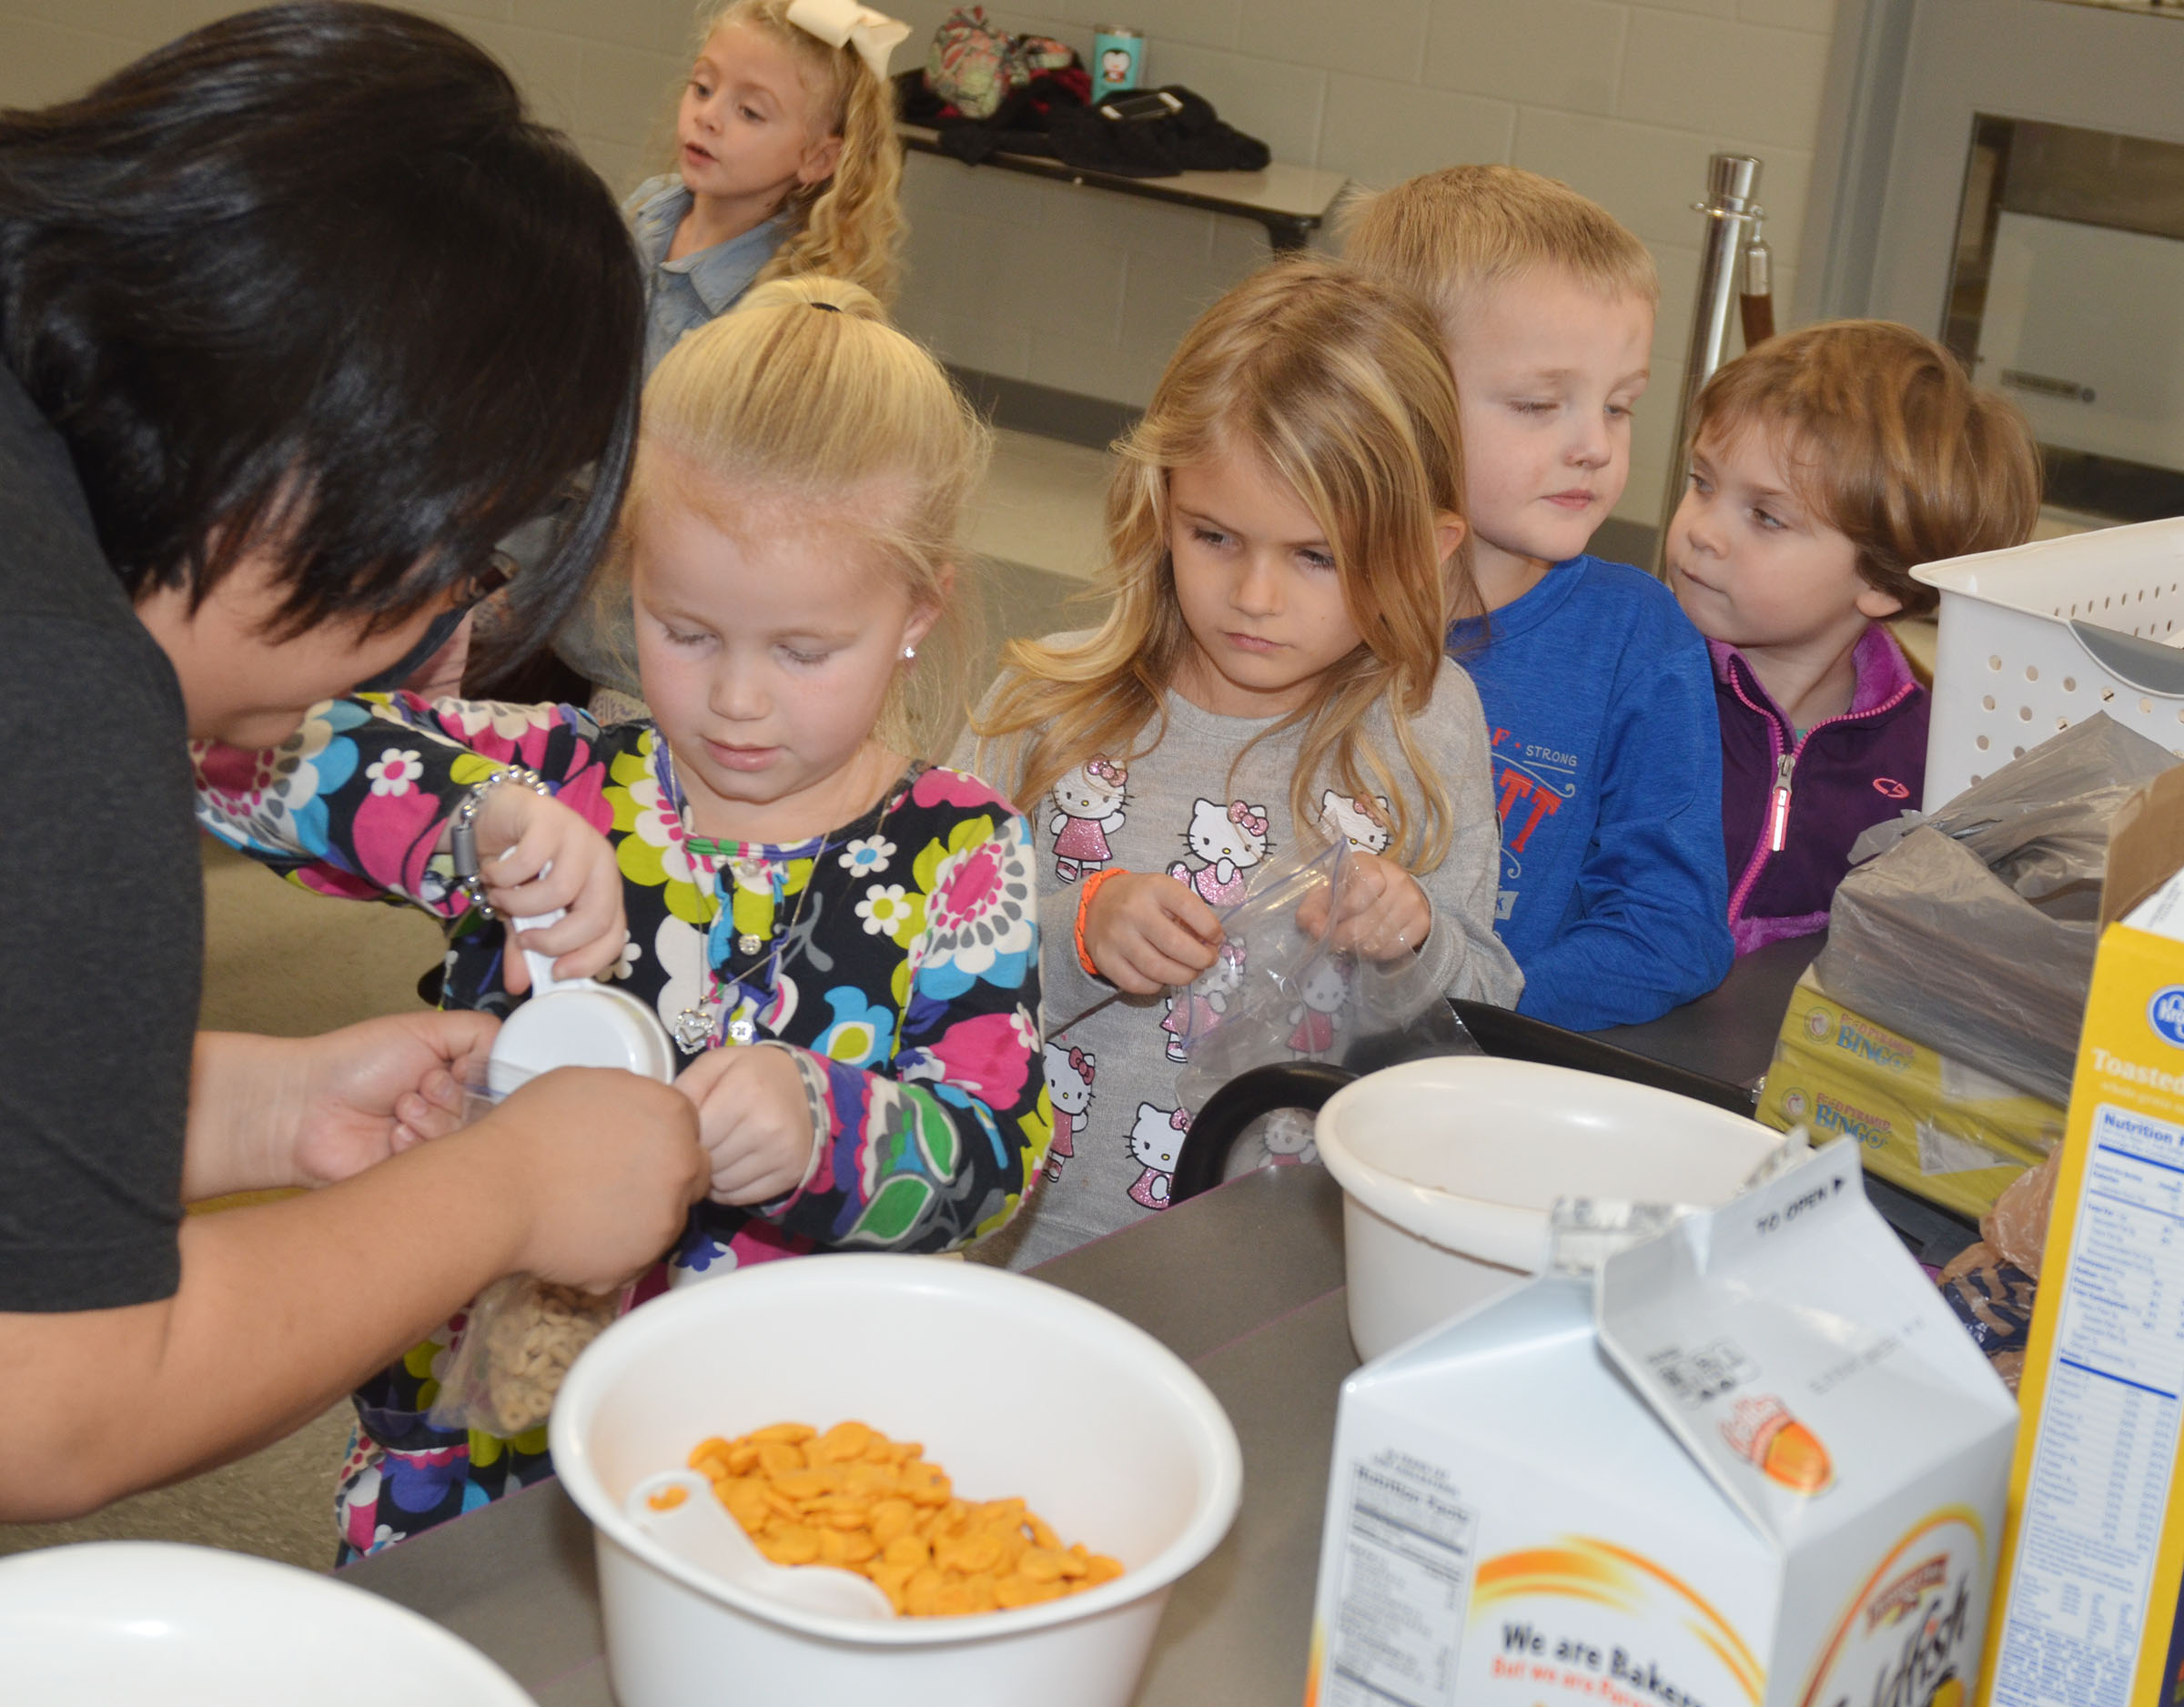 CES instructional assistant Brittany Johnson helps kindergartener Lillie Judd make her trail mix, as Judd's classmates wait their turn.